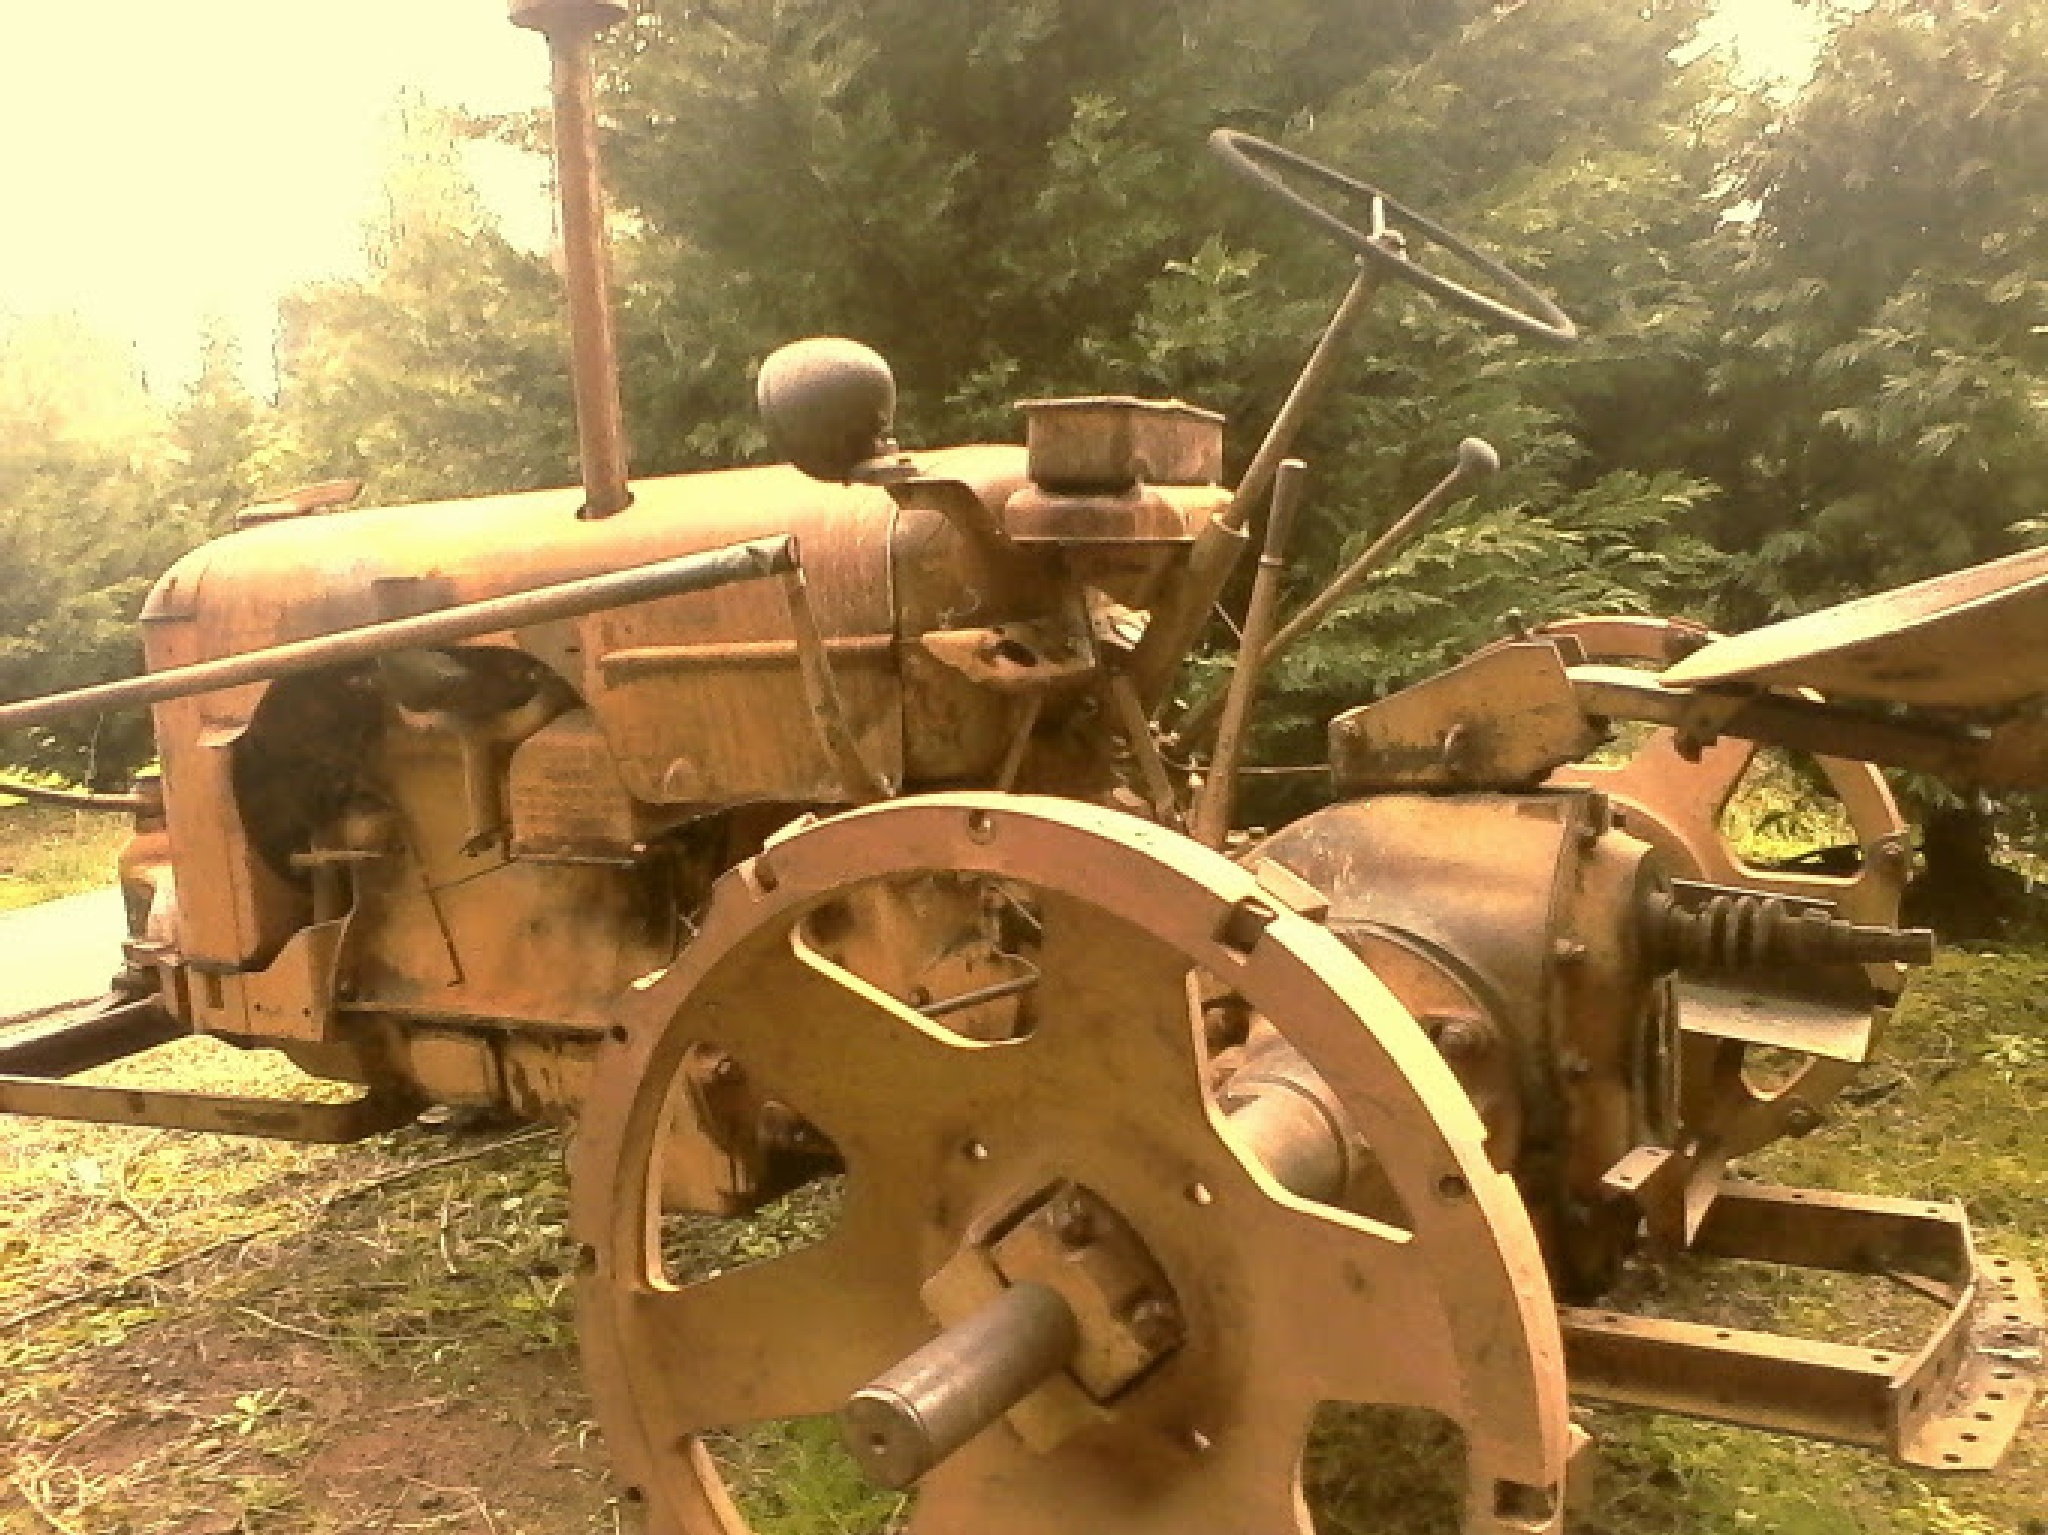 Rusty Tractor by Laurence C.